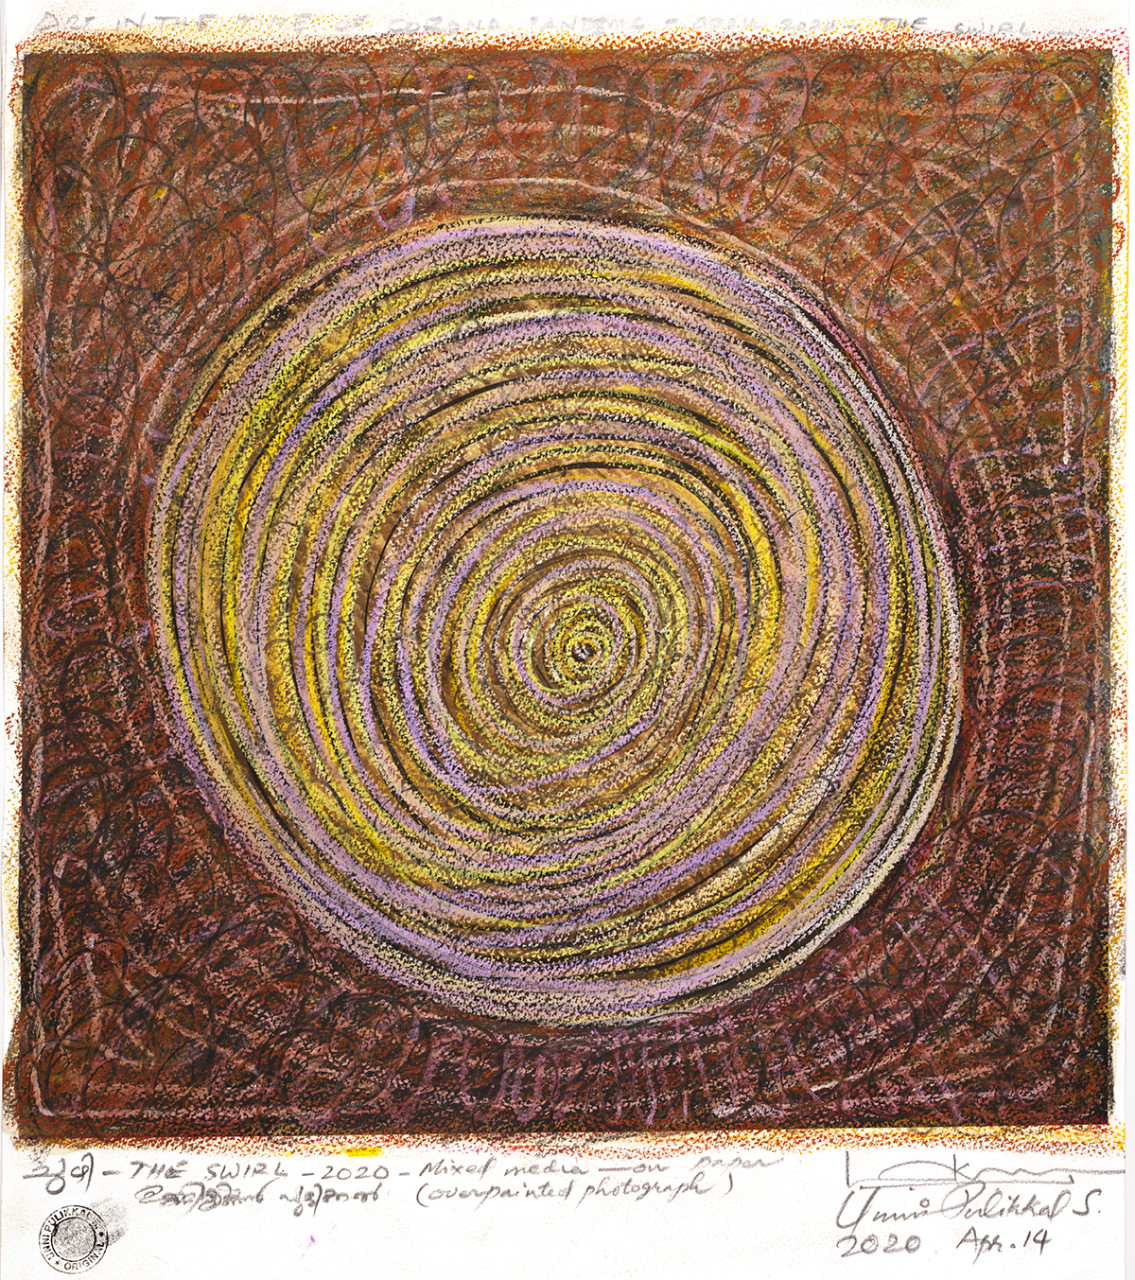 'The Swirl', 2020, Mixed media/over-painted photograph, 16x16 inches, Unique Edn.